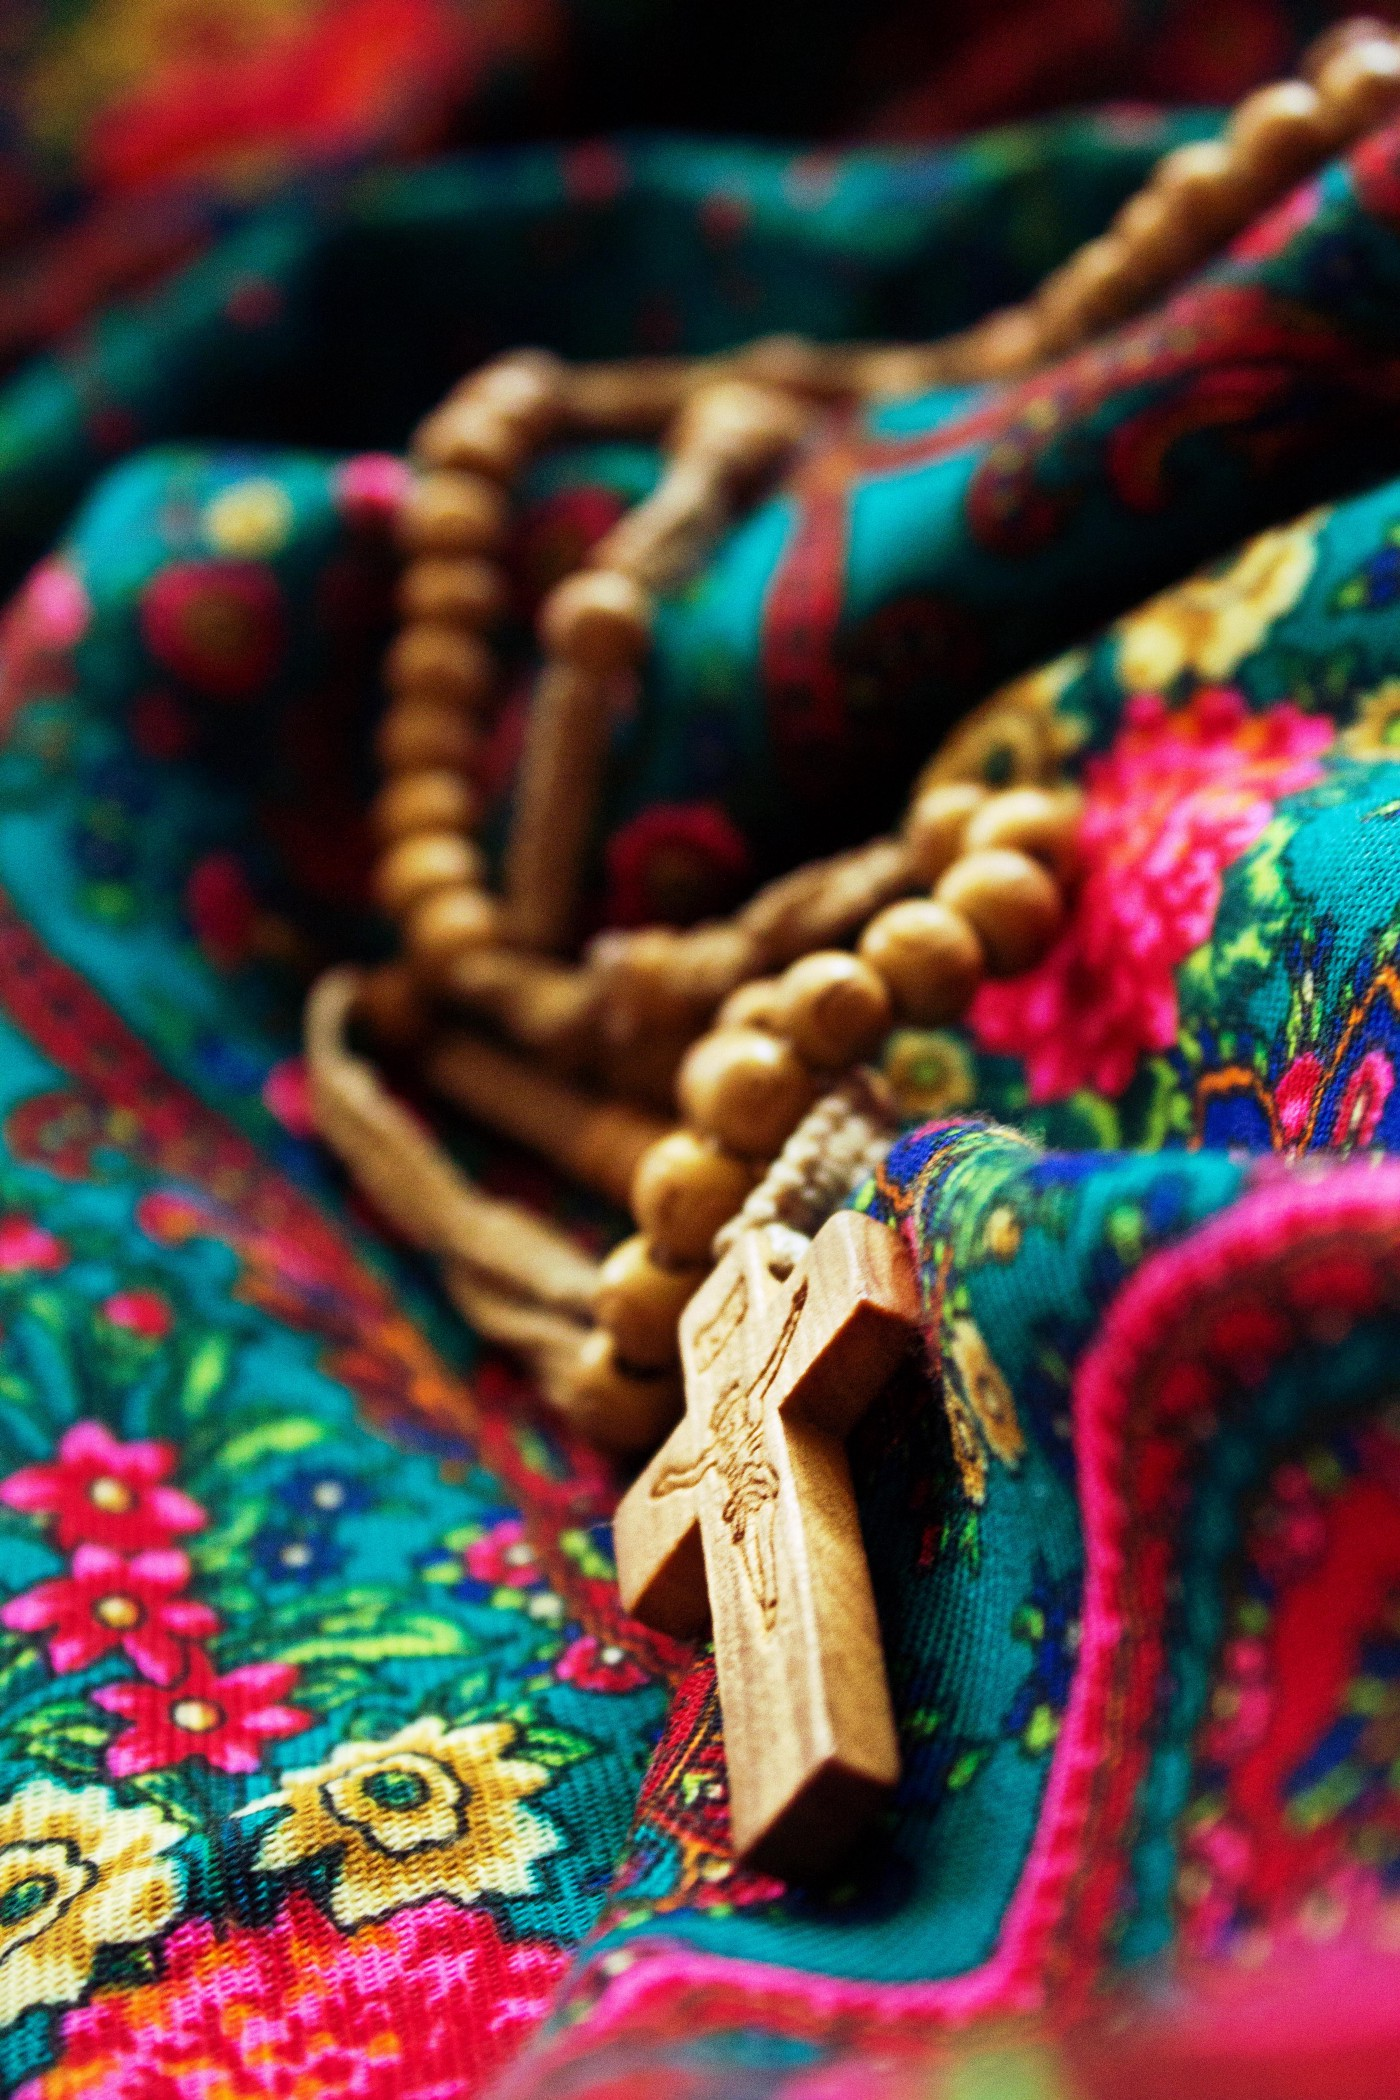 A rosary laying on a colorful cloth